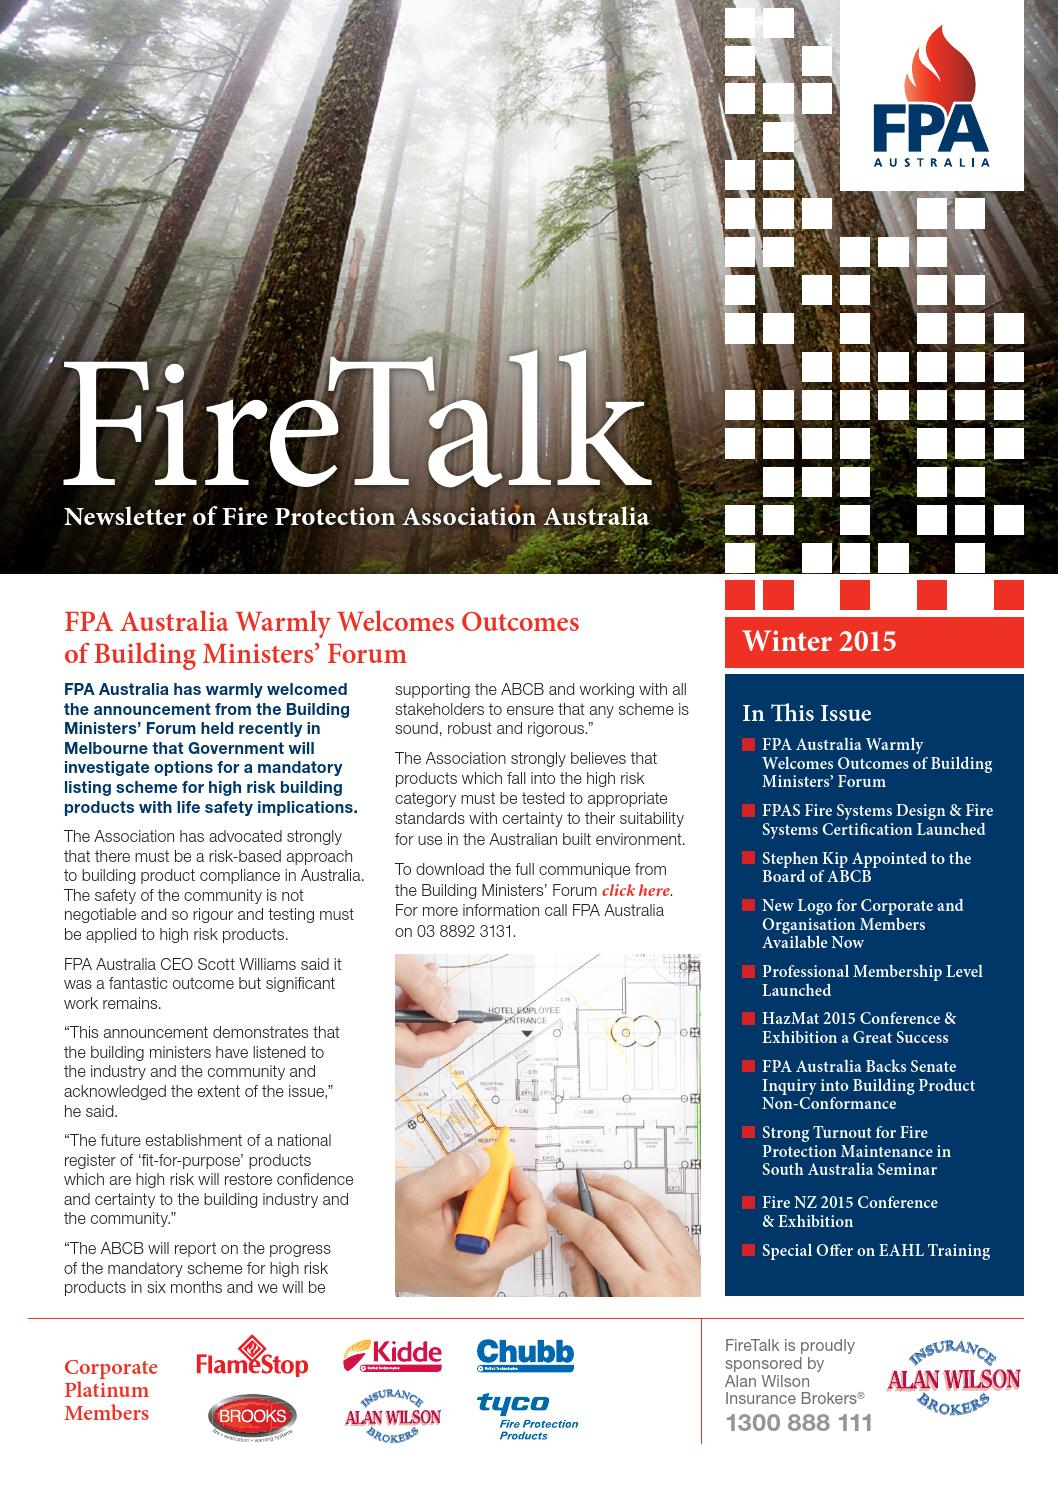 Firetalk winter 2015 the newsletter for fire protection firetalk winter 2015 the newsletter for fire protection association members by josephkeller issuu xflitez Image collections